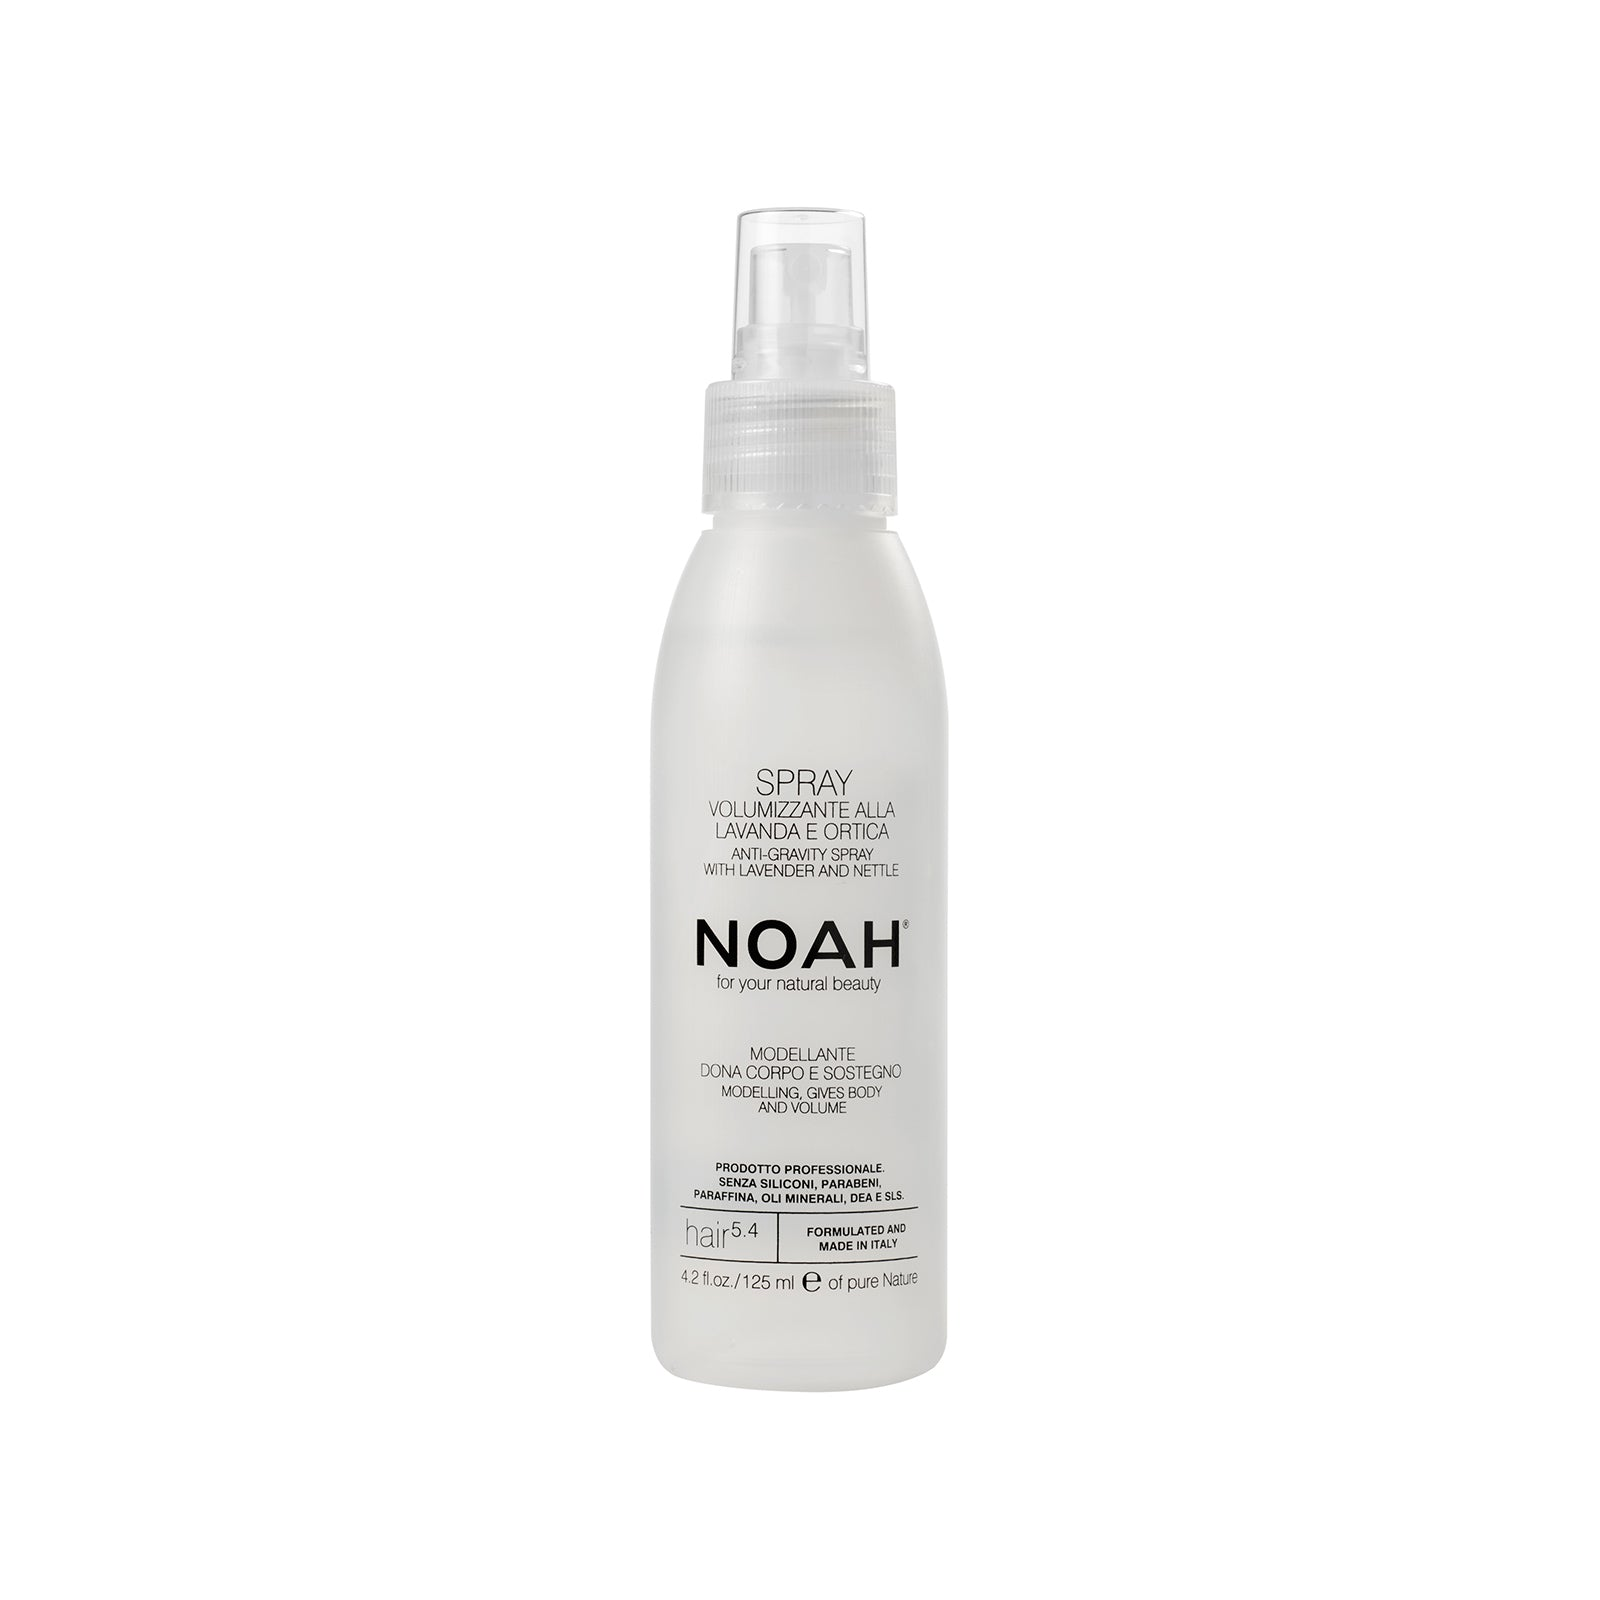 NOAH Volumizing spray modeling, gives body and volume to the hair- TUUHEUTTAVA SUIHKE